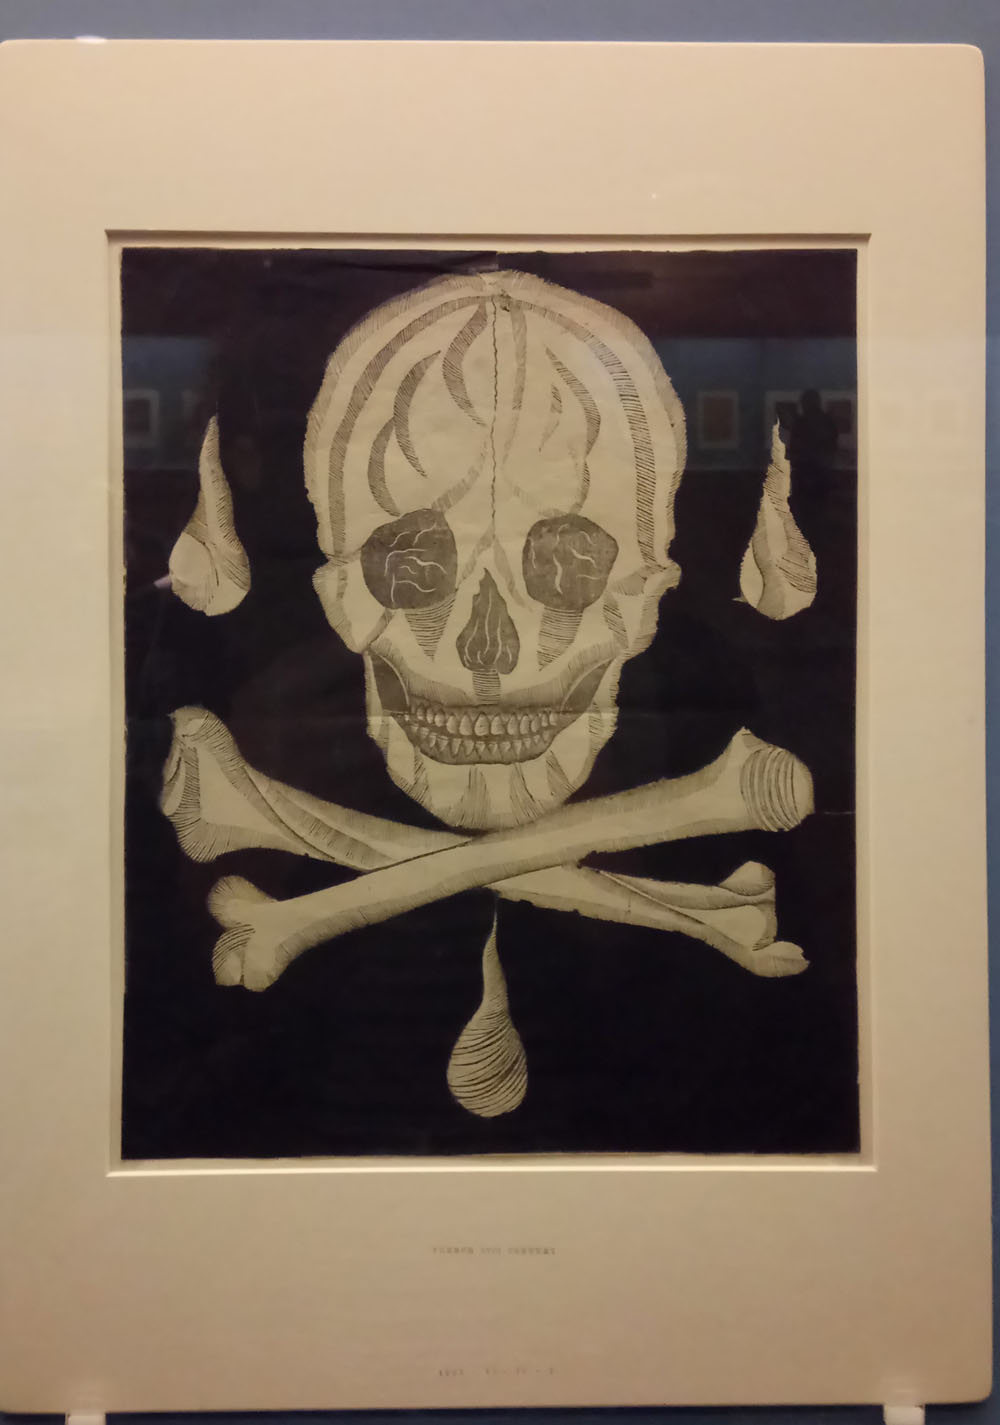 French woodcut, paper conservation, Halloween